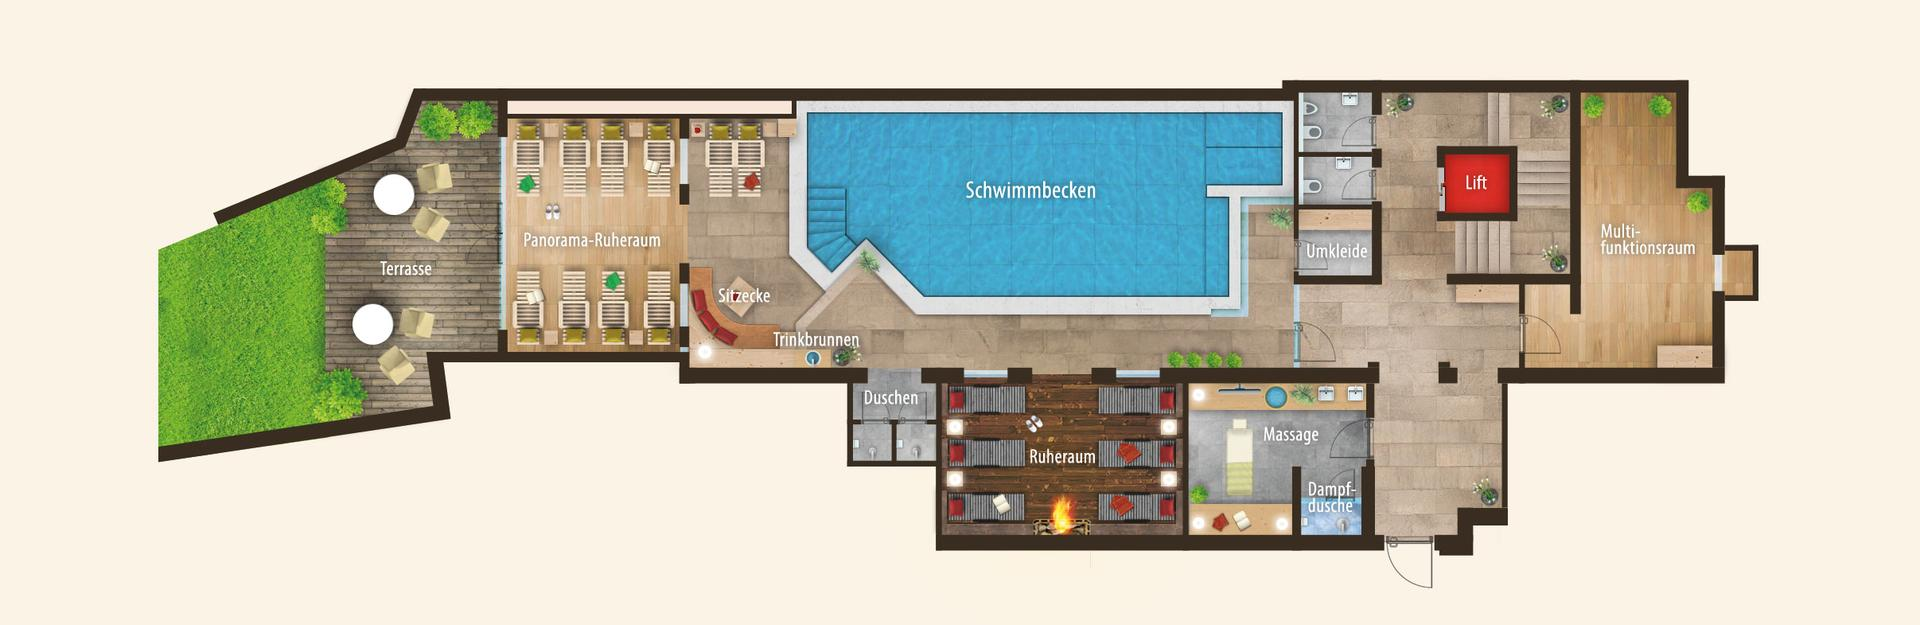 With Our Enhanced Facilities Featuring A New 12 X 15 M Indoor Swimming Pool Two Generous Relaxation Rooms And Terrace An Adjacent Garden Area